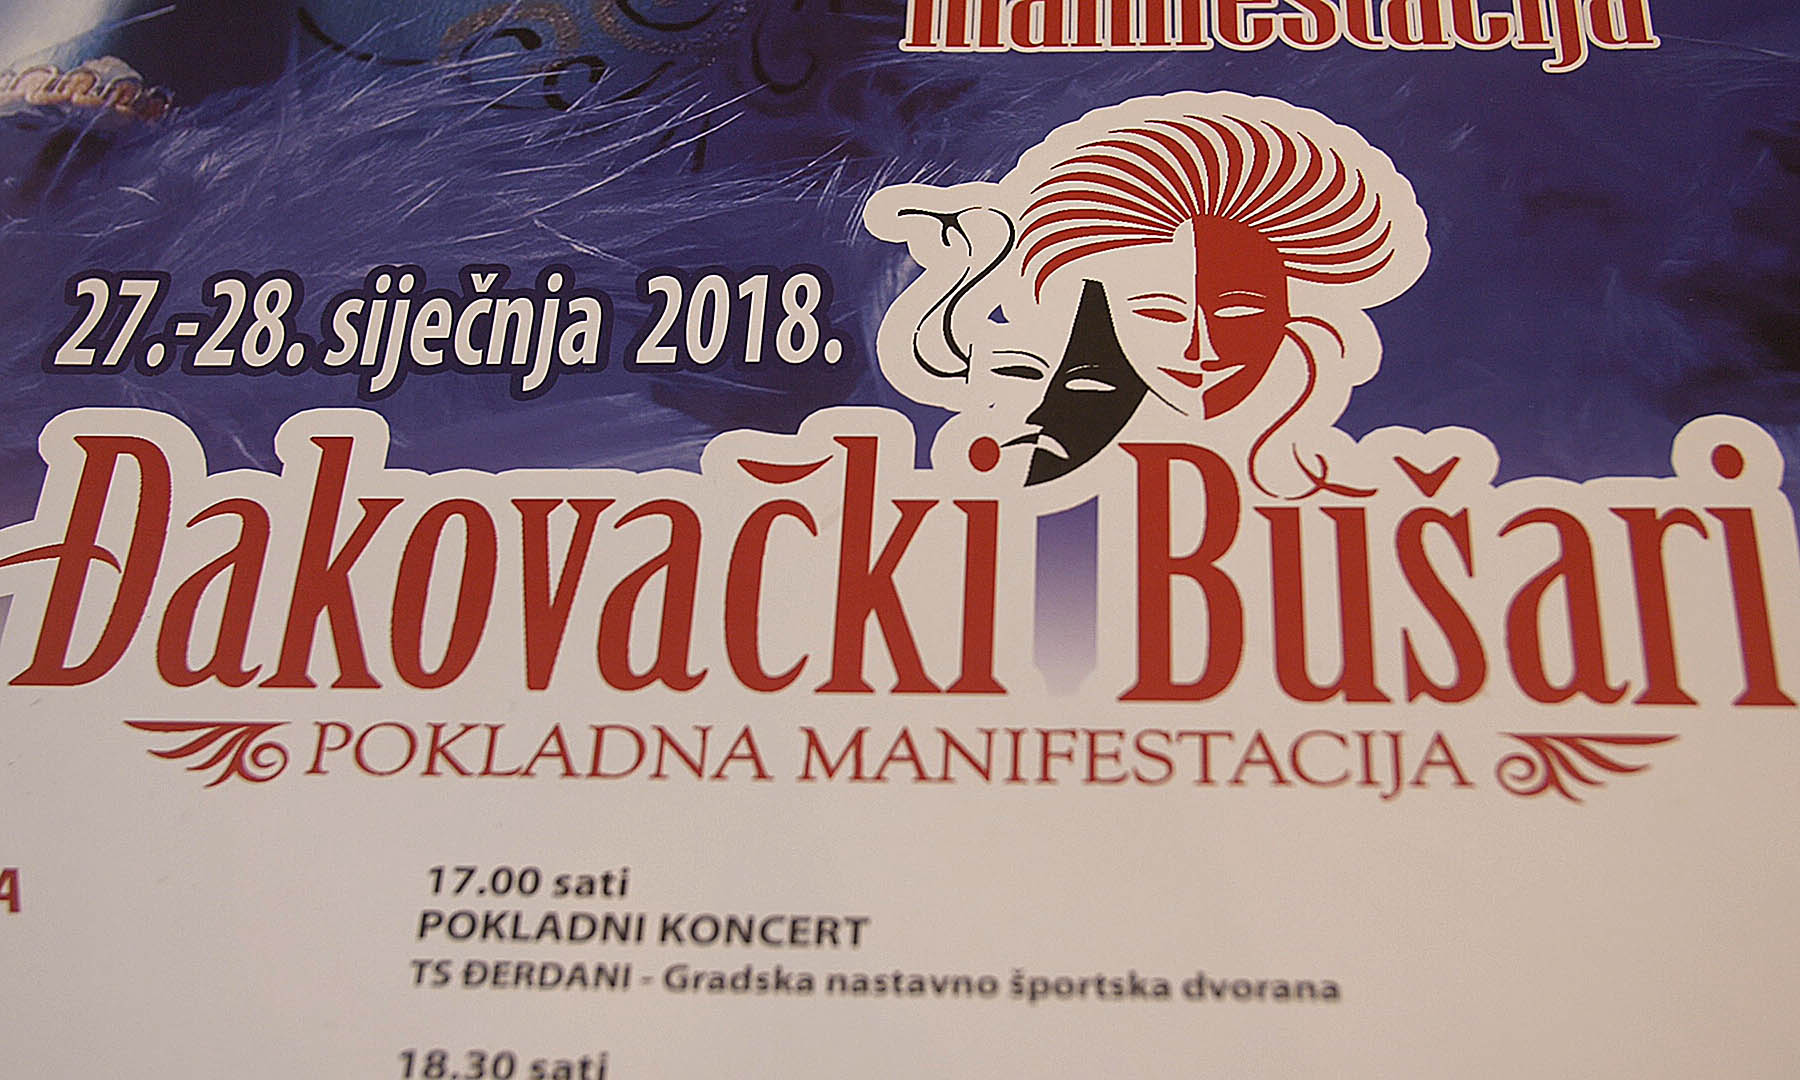 ĐAKOVAČKI BUŠARI 2018. – press konferencija